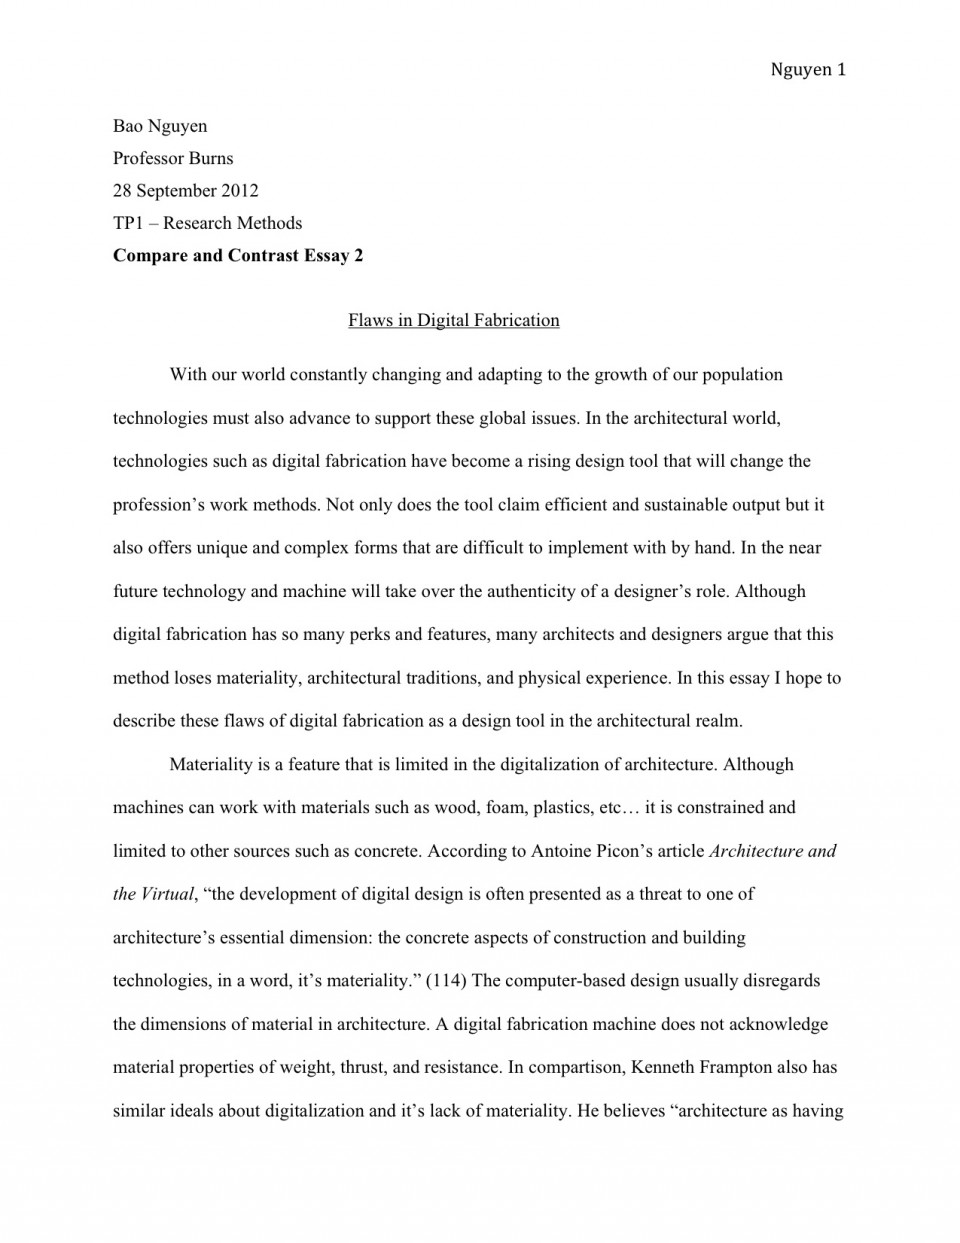 005 How To Write An Essay Example Tp1 3 Shocking In Mla Format Word 2013 About Yourself For College Application 960